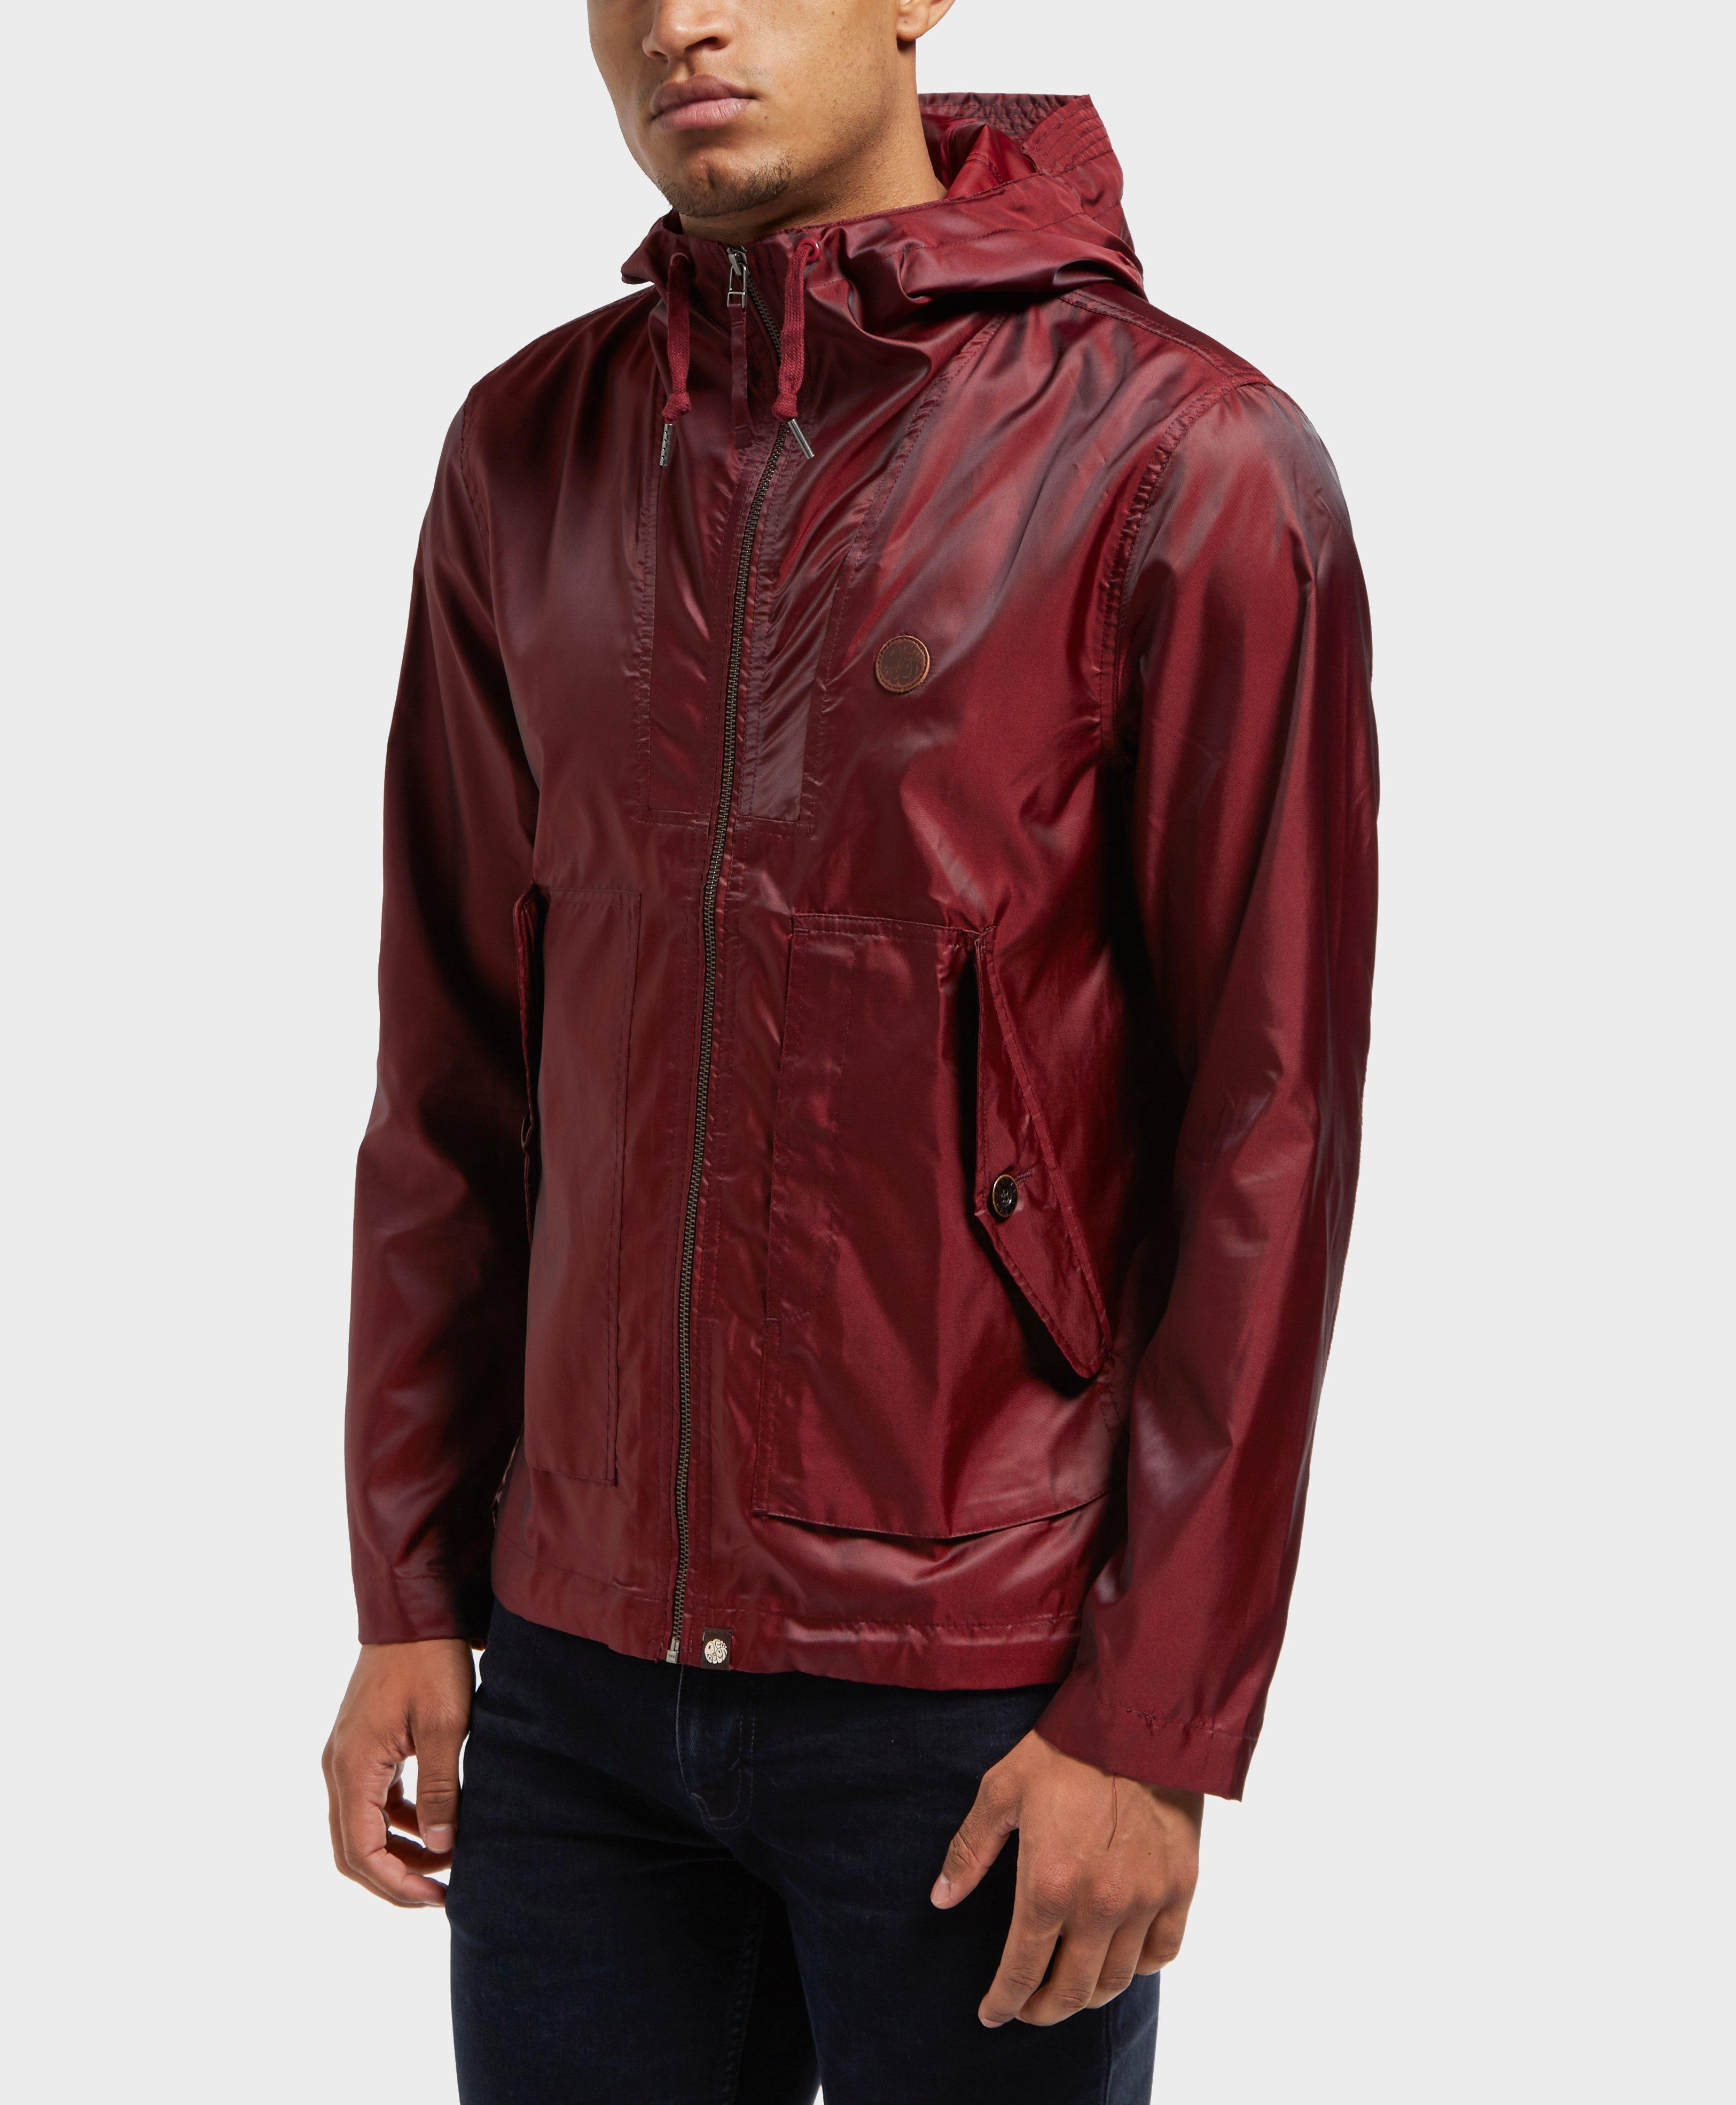 7b771eb750c900 Lyst - Pretty Green Danbury Iridescent Jacket - Exclusive in Red for Men